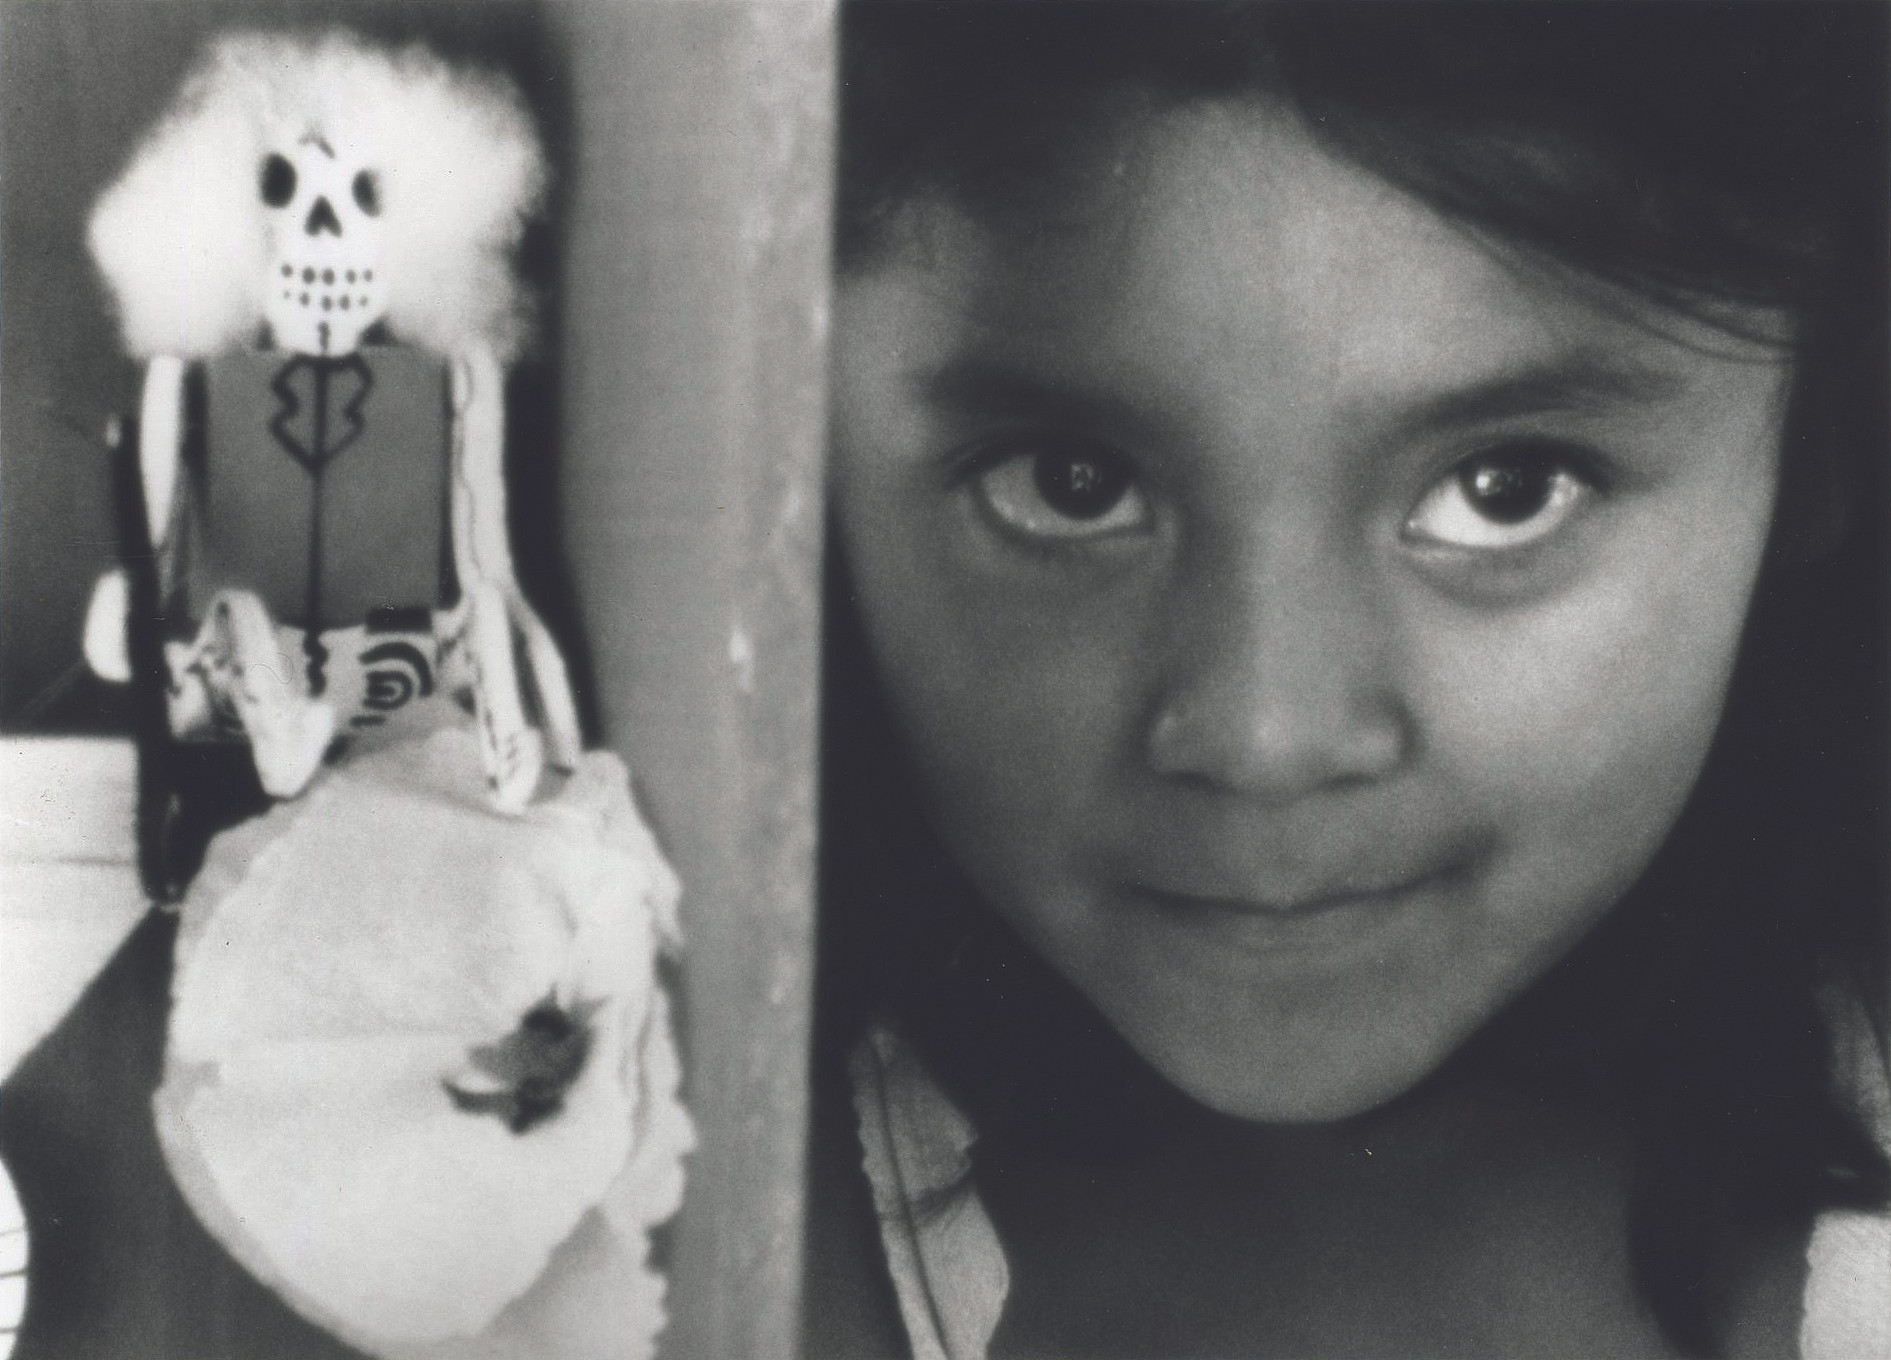 Lourdes Portillo, Susana Muñoz. La Ofrenda: The Days of the Dead. 1988 | MoMA